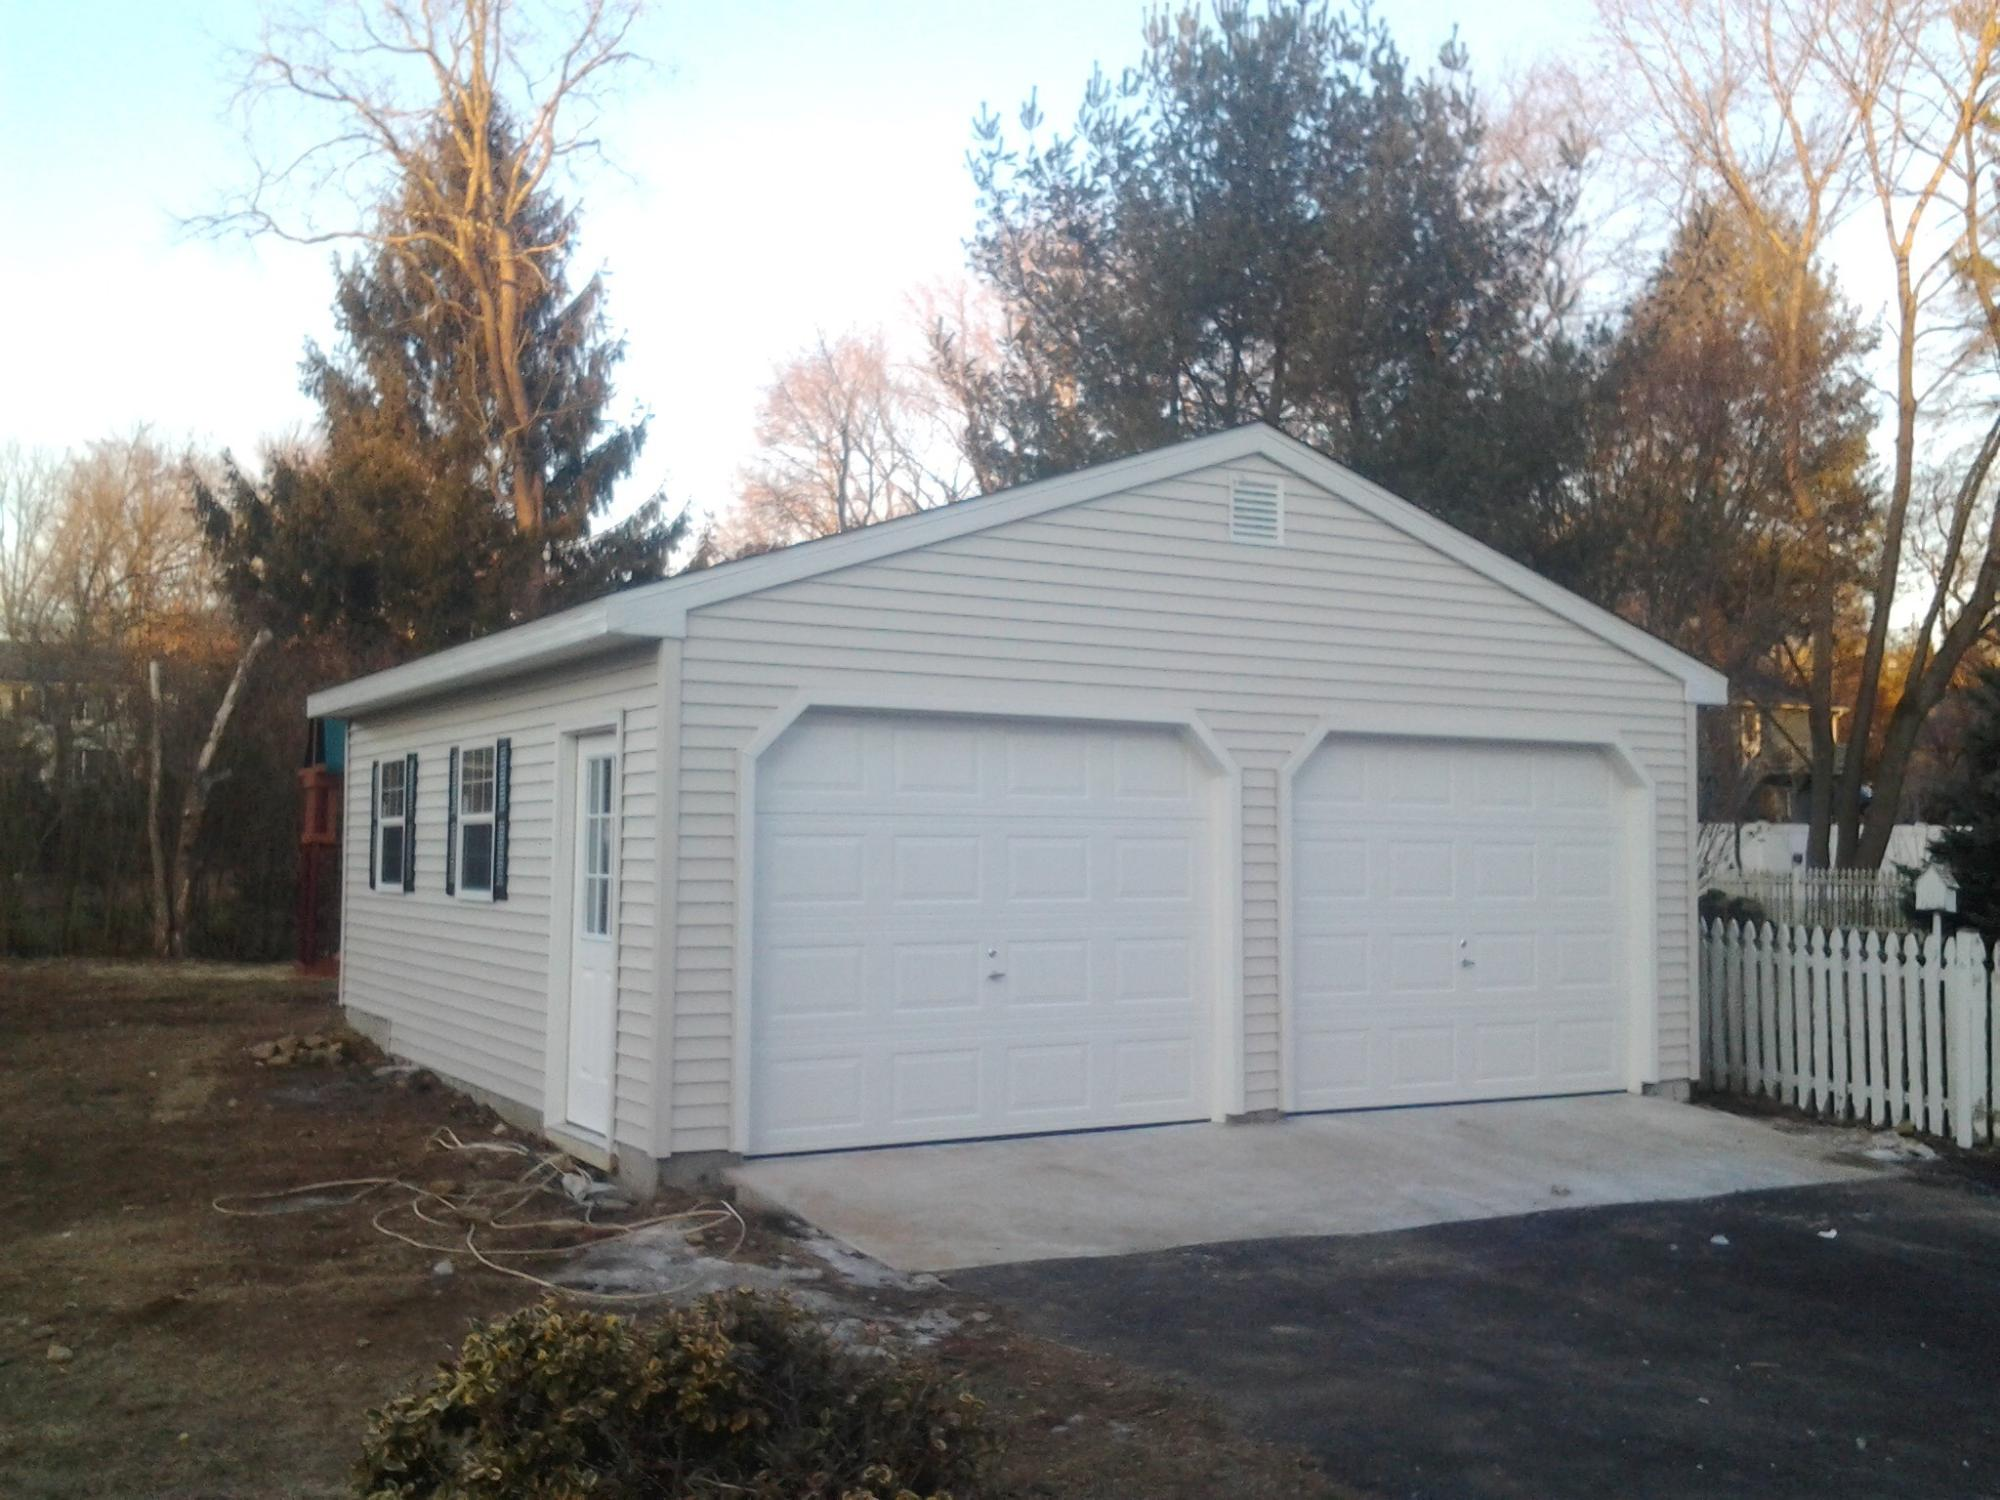 gazebos sheds garage garages photohed photo storage builttorageheds barns builders murfreesboro tn built backyards michigan amish